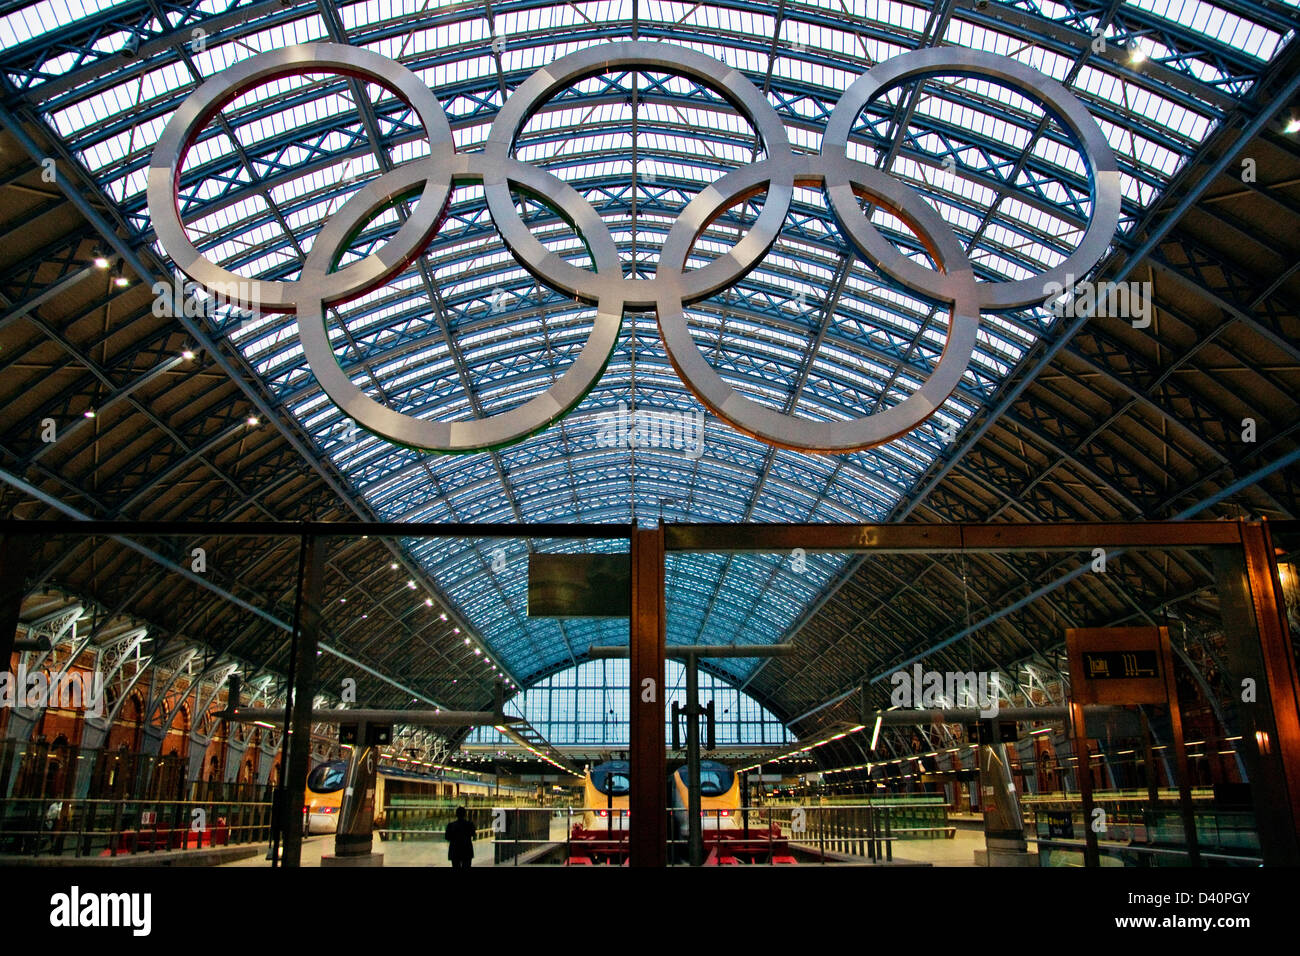 Giant Olympic rings St Pancras station in London, five aluminum rings in Olympic colors of blue, yellow, black, - Stock Image